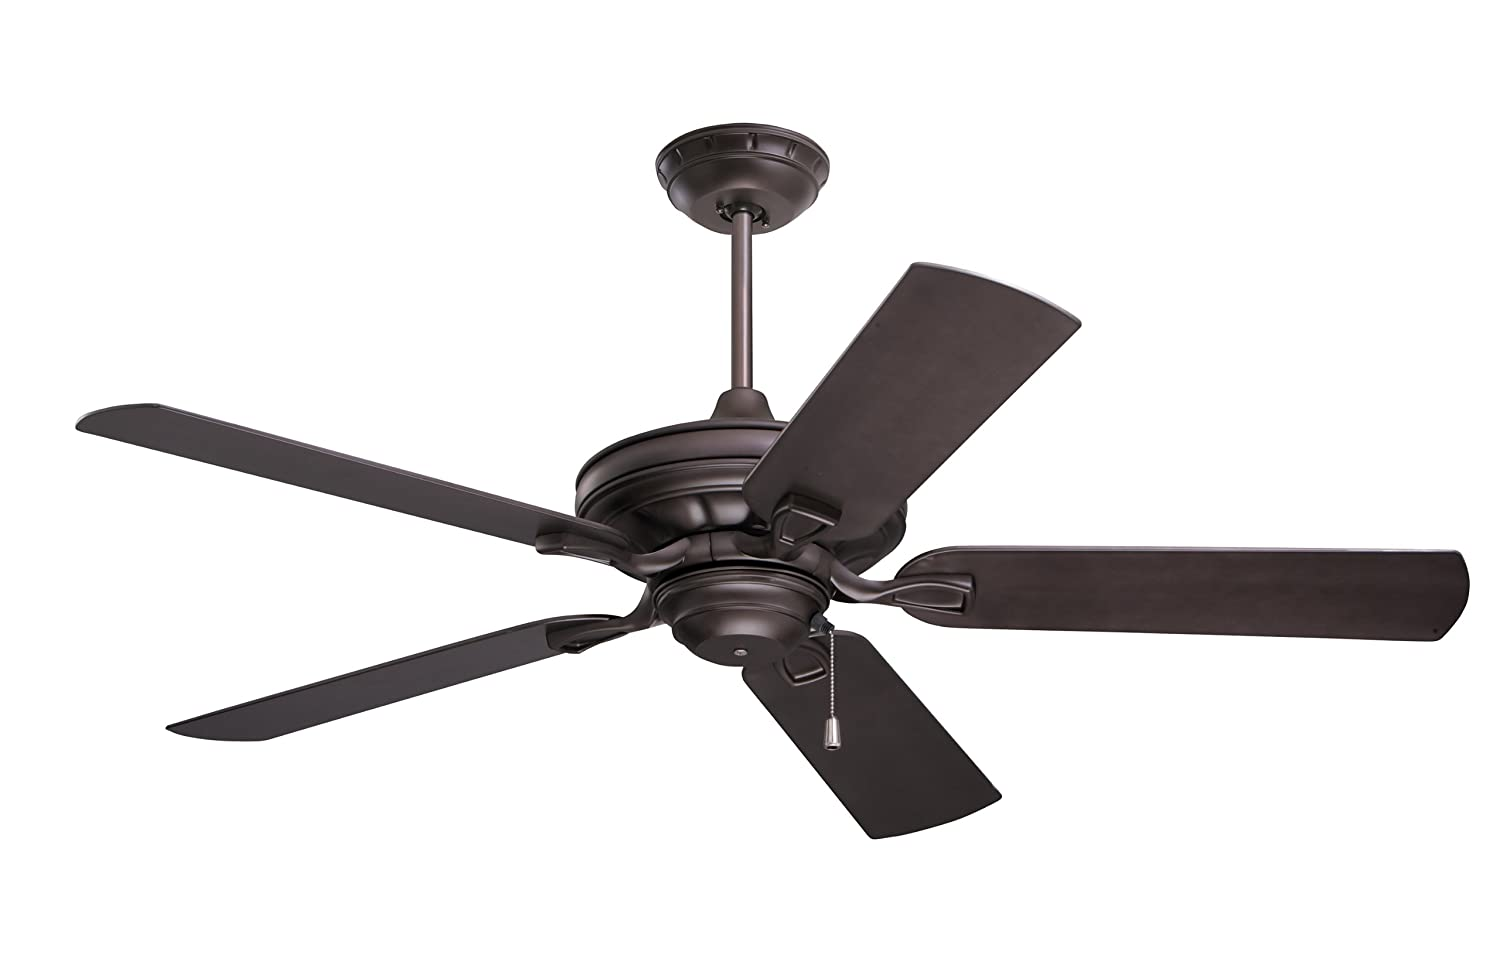 Emerson ceiling fans cf552orb veranda 52 inch indoor outdoor emerson ceiling fans cf552orb veranda 52 inch indoor outdoor ceiling fan wet rated light kit adaptable oil rubbed bronze finish close to ceiling light mozeypictures